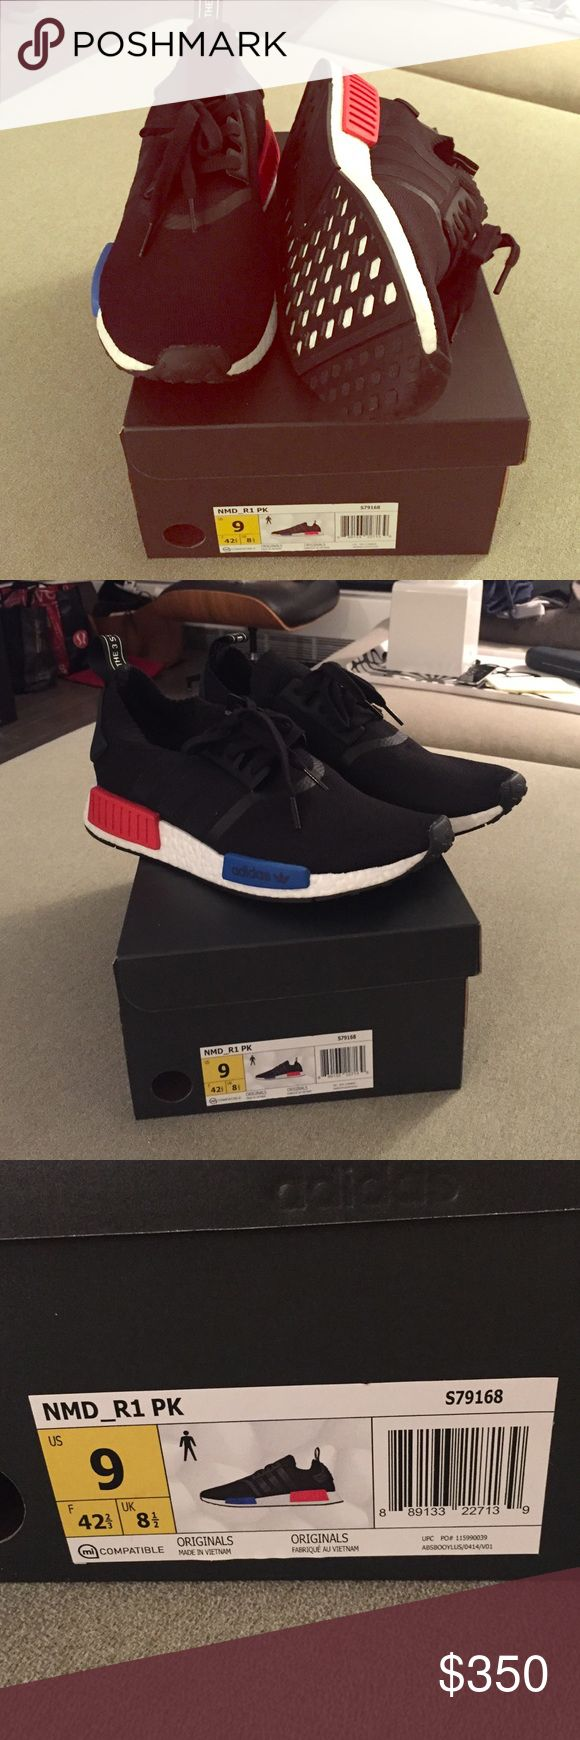 NMD_R1 flight club all black with red and blue Brand new in box nmds Adidas Shoes Athletic Shoes